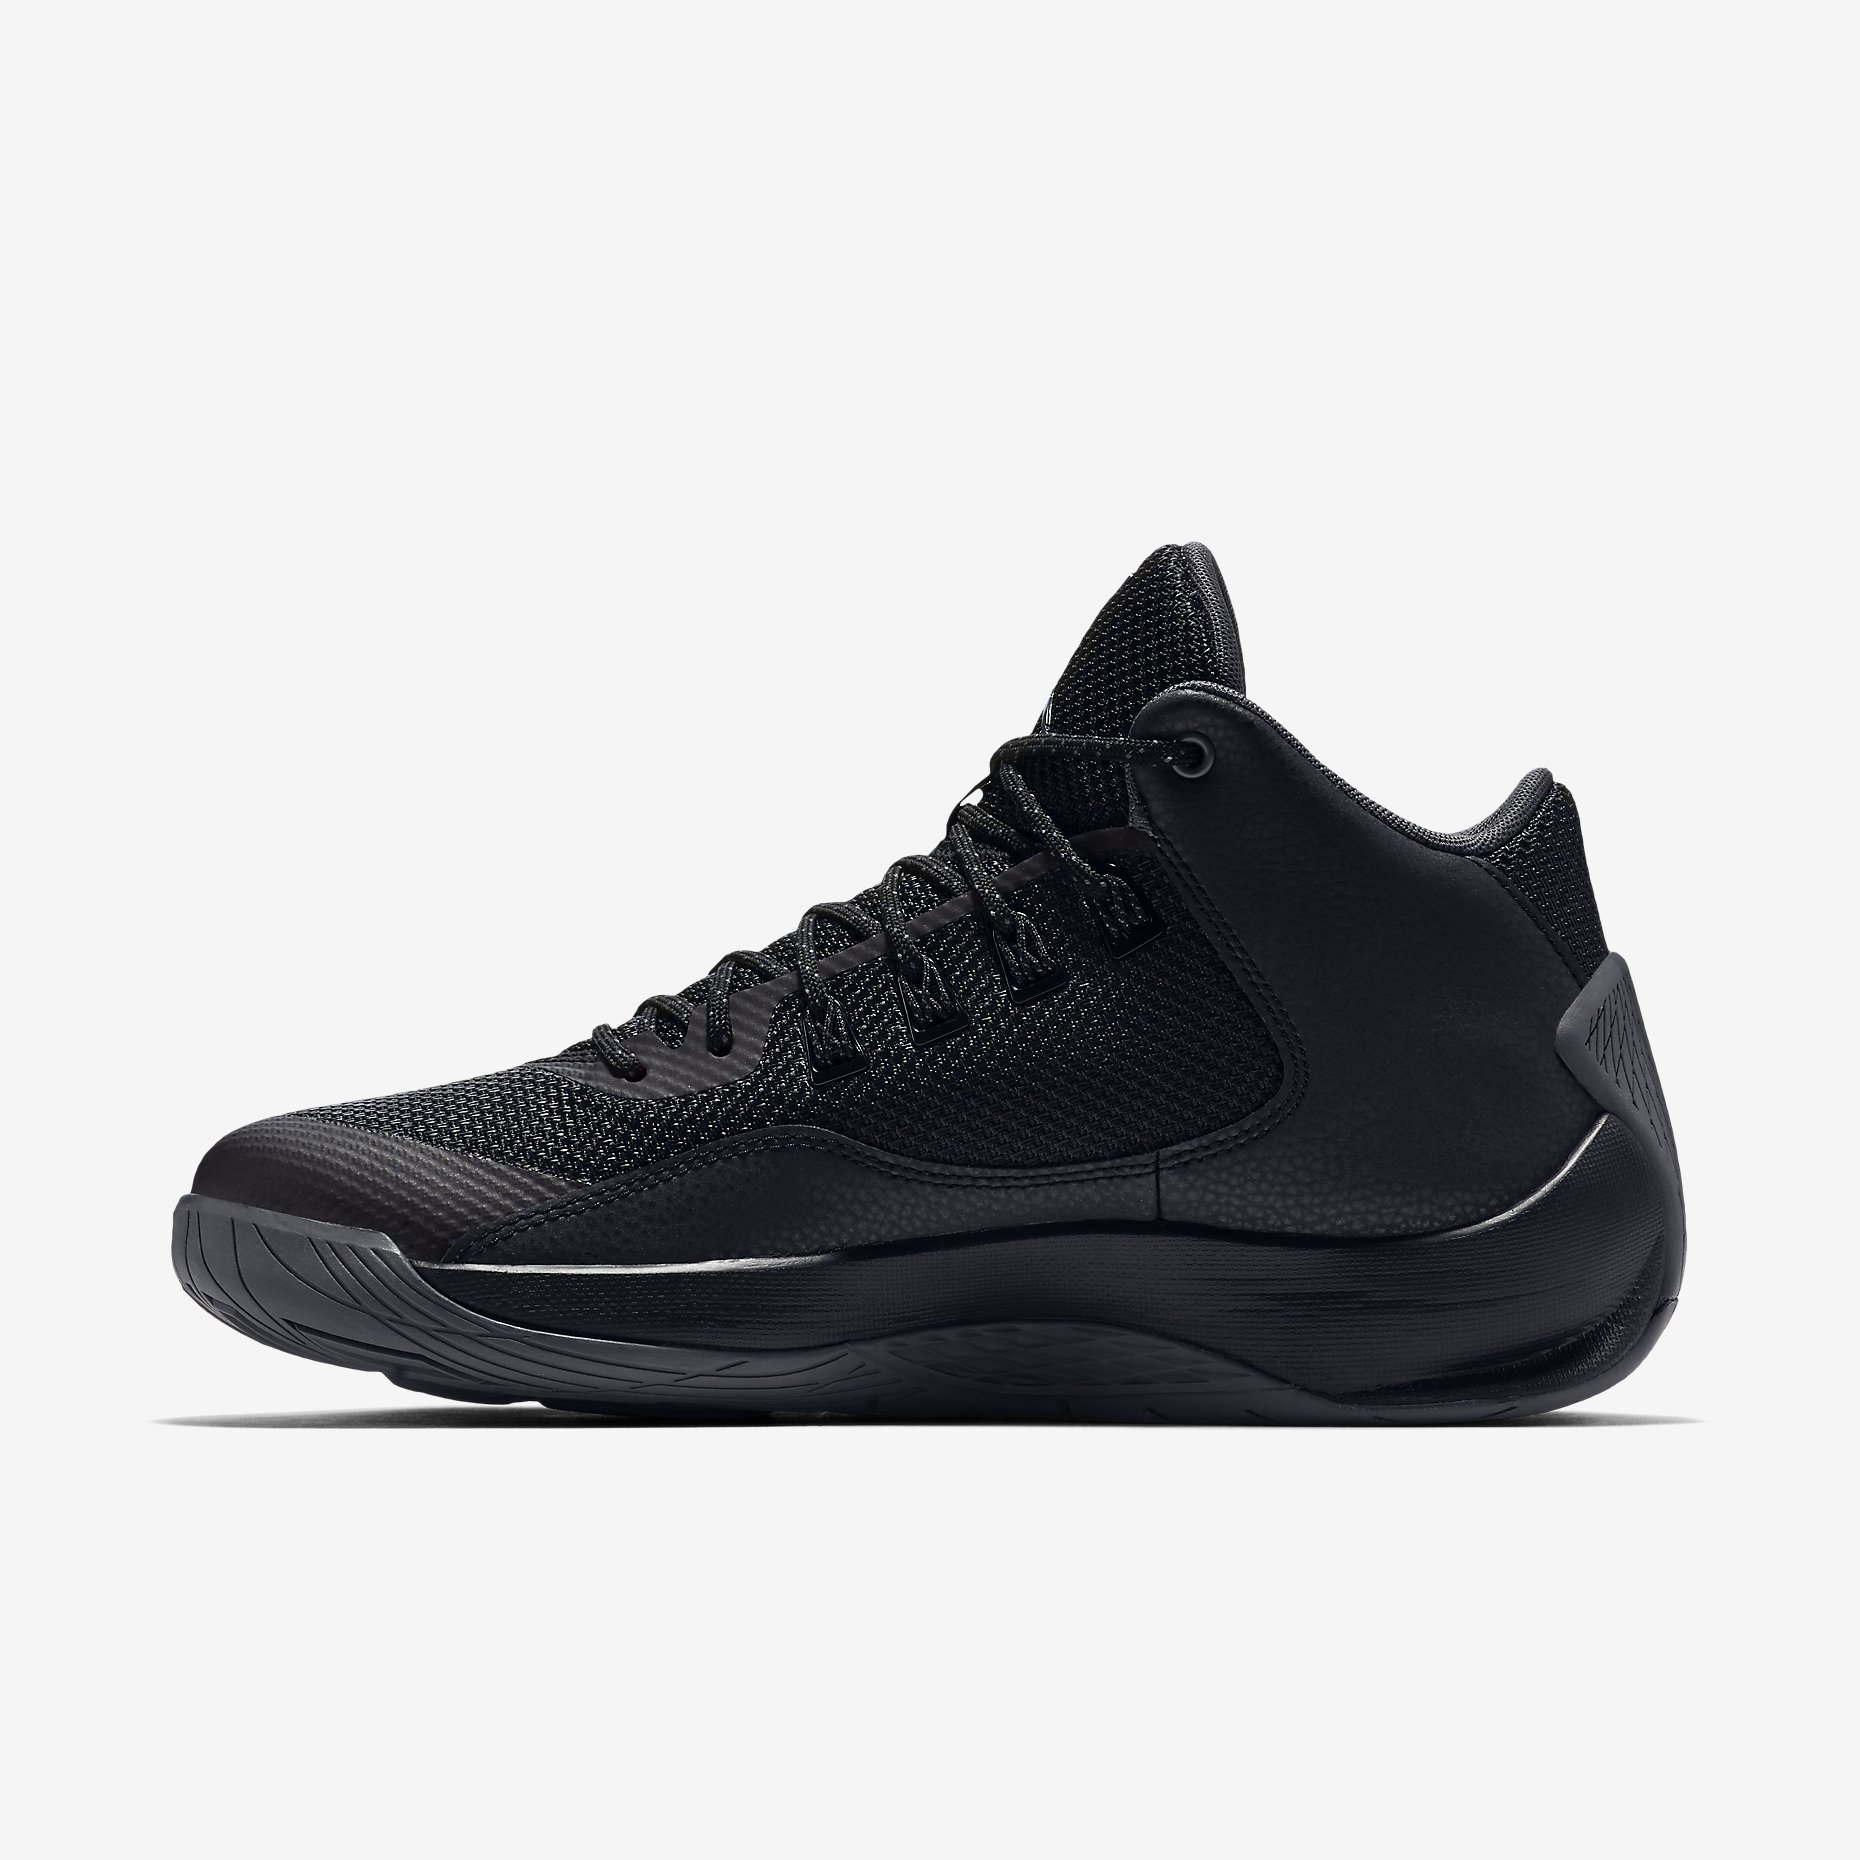 huge selection of 09f2e cd173 Get Quotations · Nike men s nike jordan jordan rising high 2 x men s  basketball shoes 845843-004